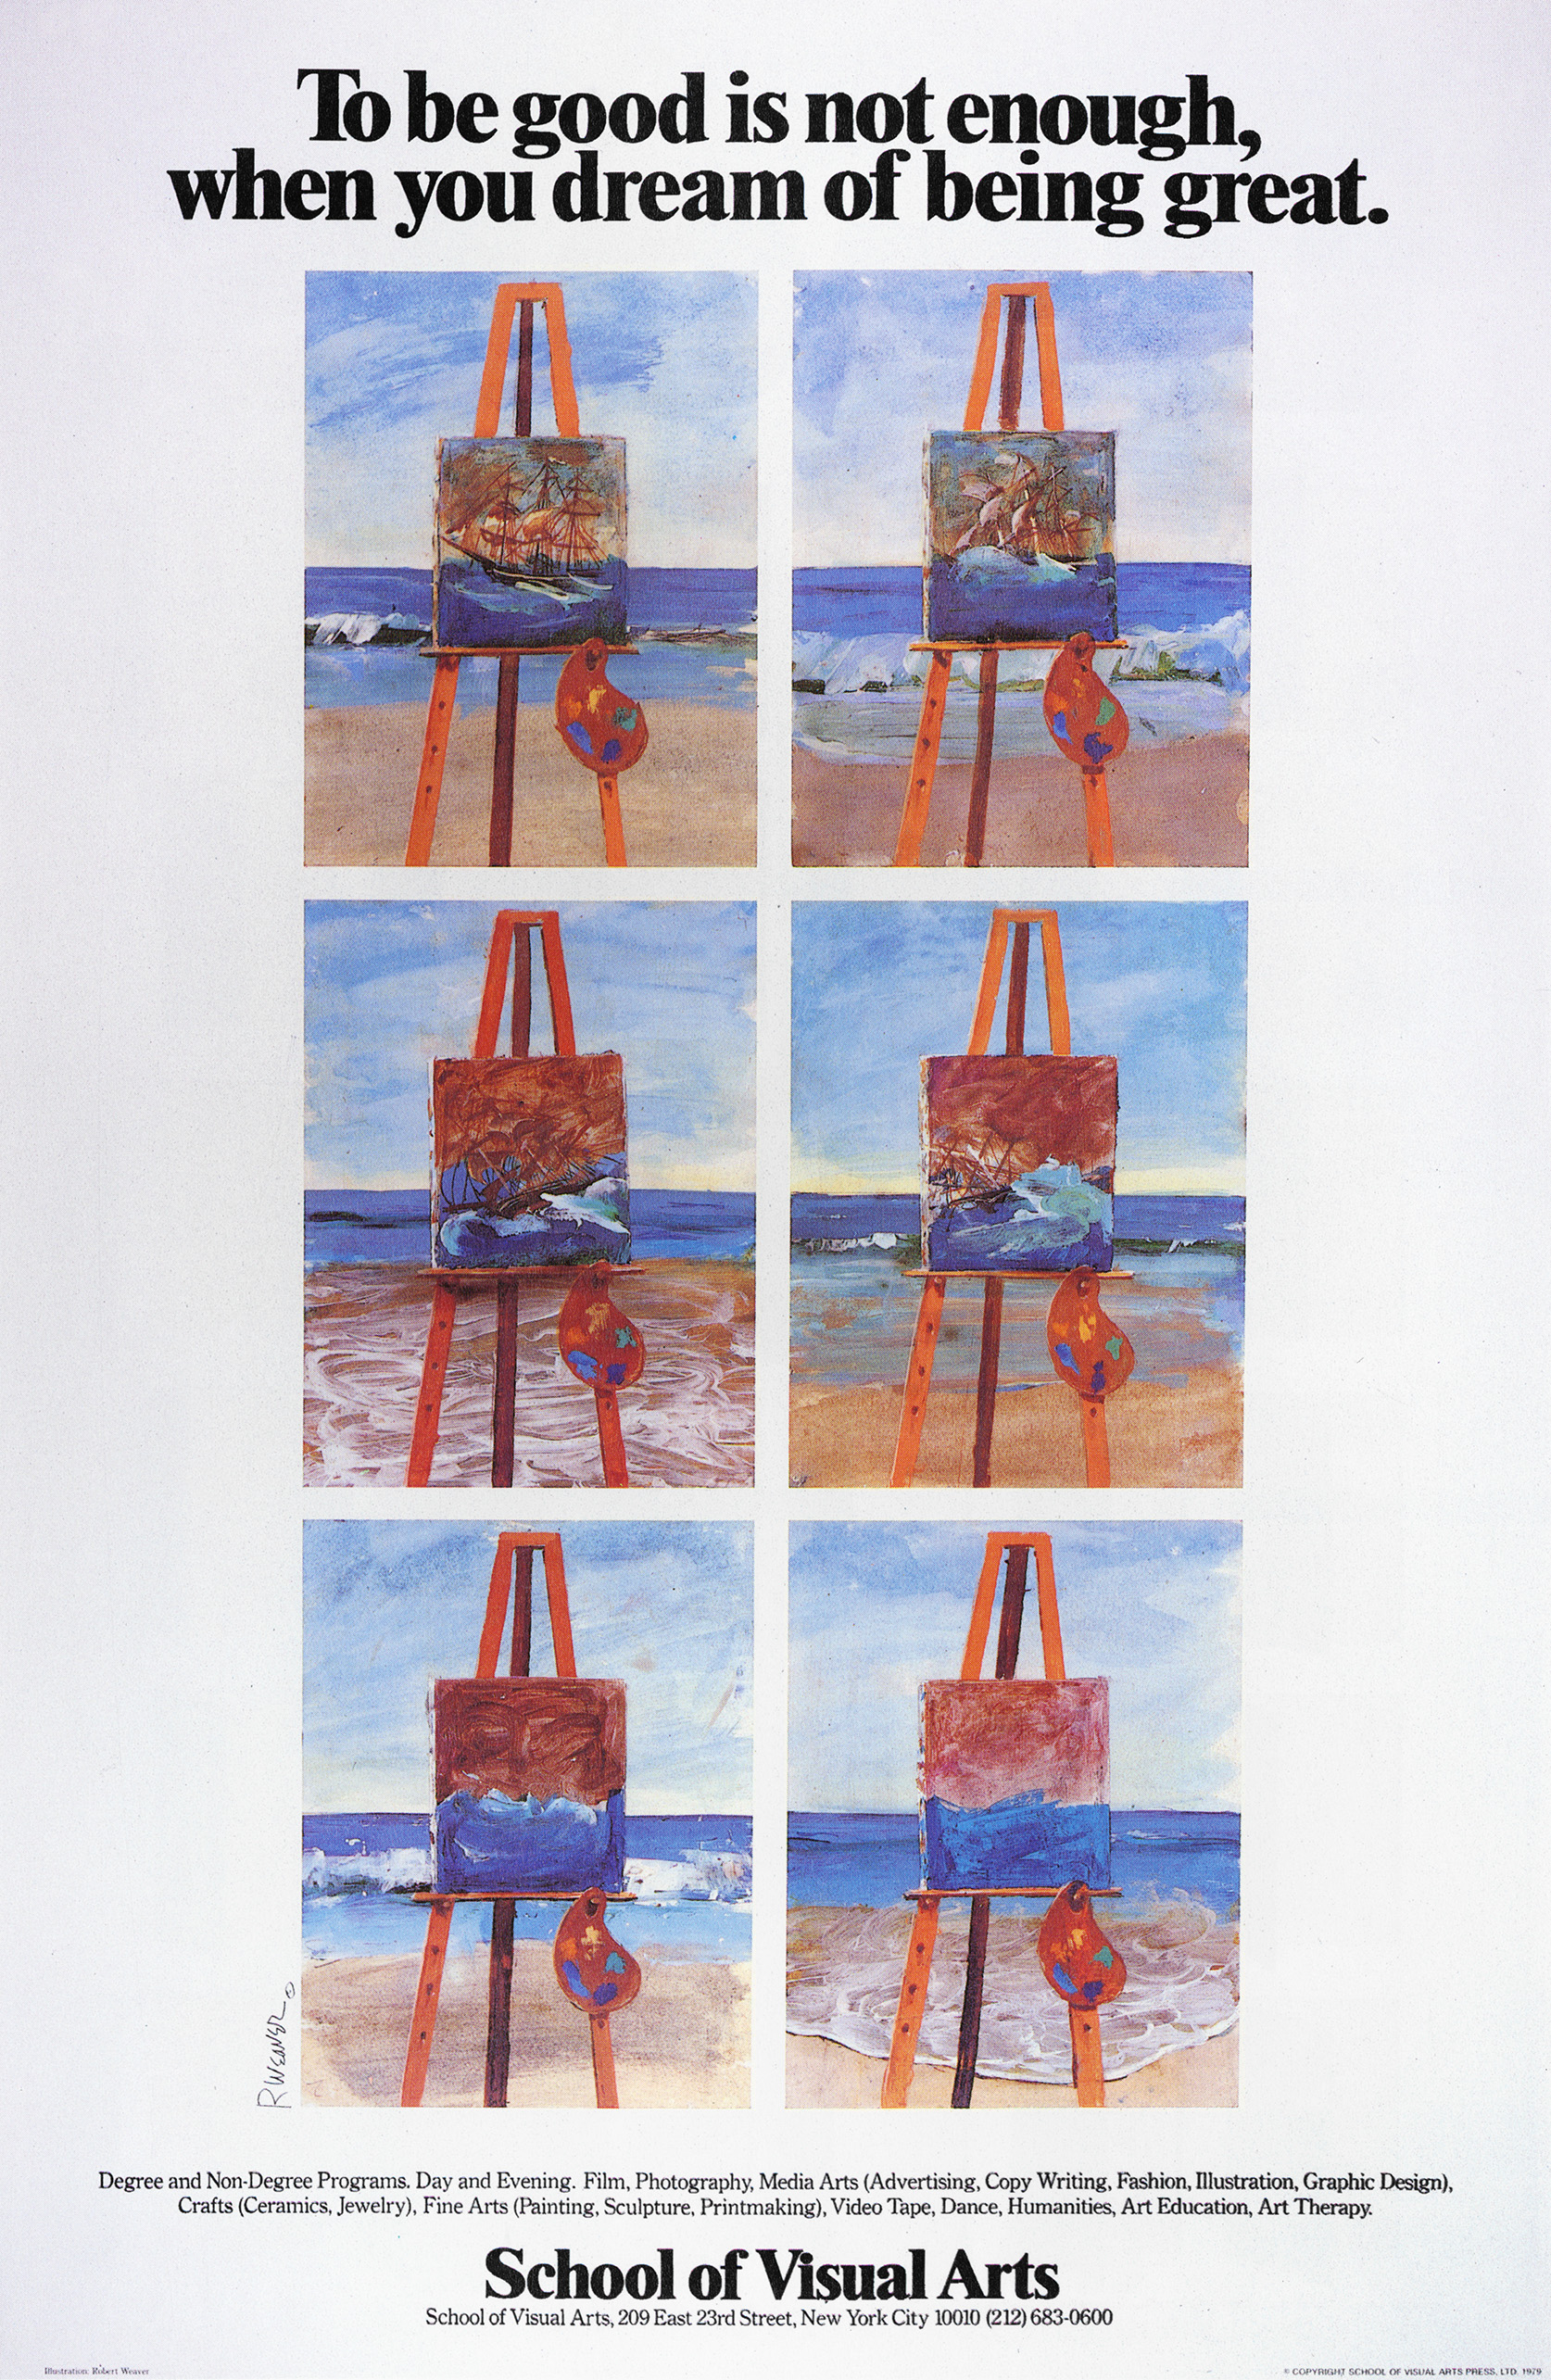 Color illustration of a grid of seemingly identical portraits of ships on easels on a beach, save for the boat sinking more in every frame, and the tides coming in and out.